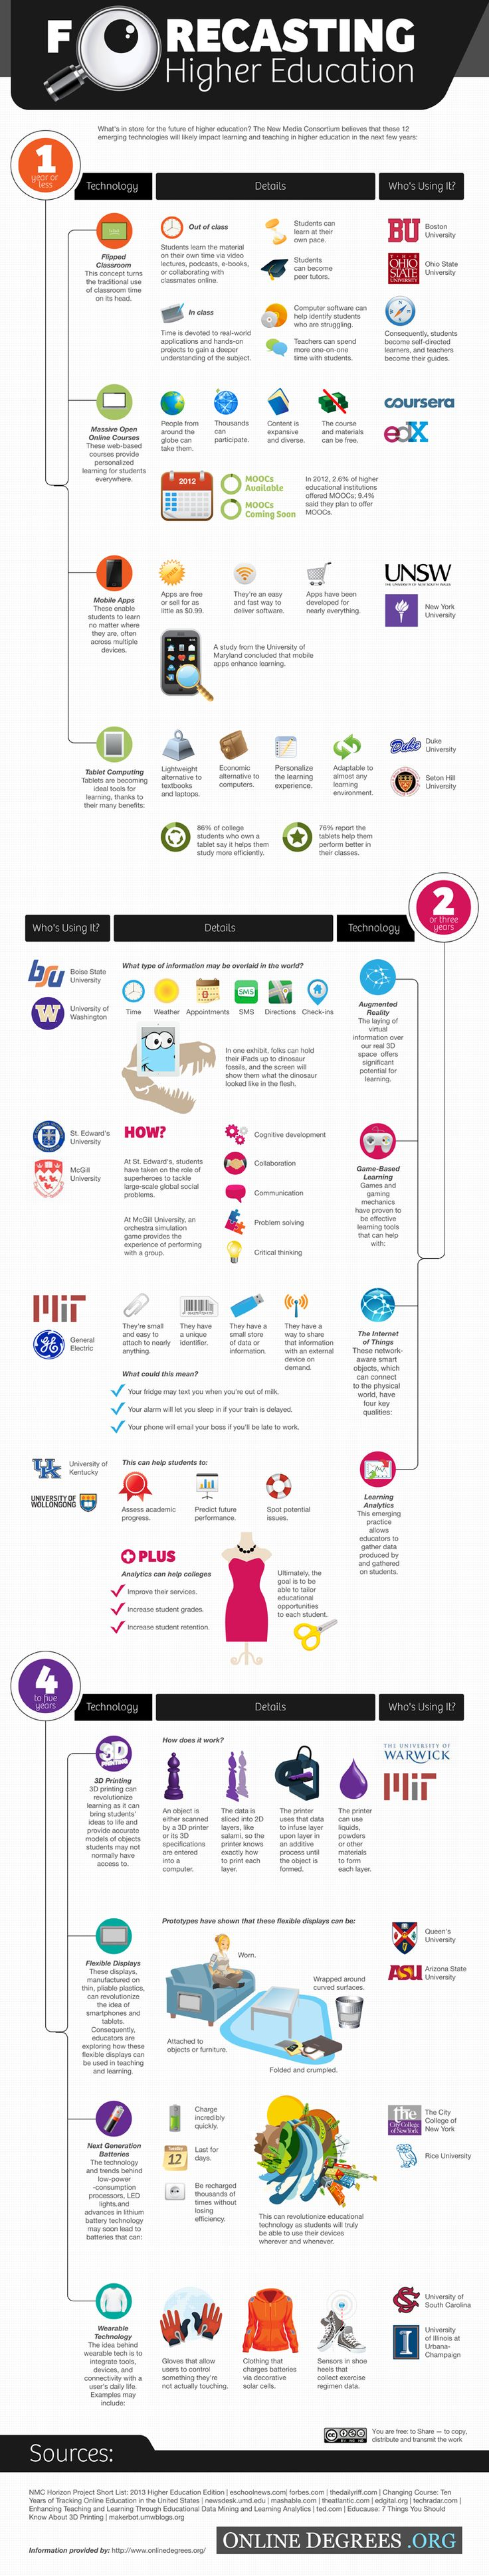 New technologies and their impact on higher education [Infographic]